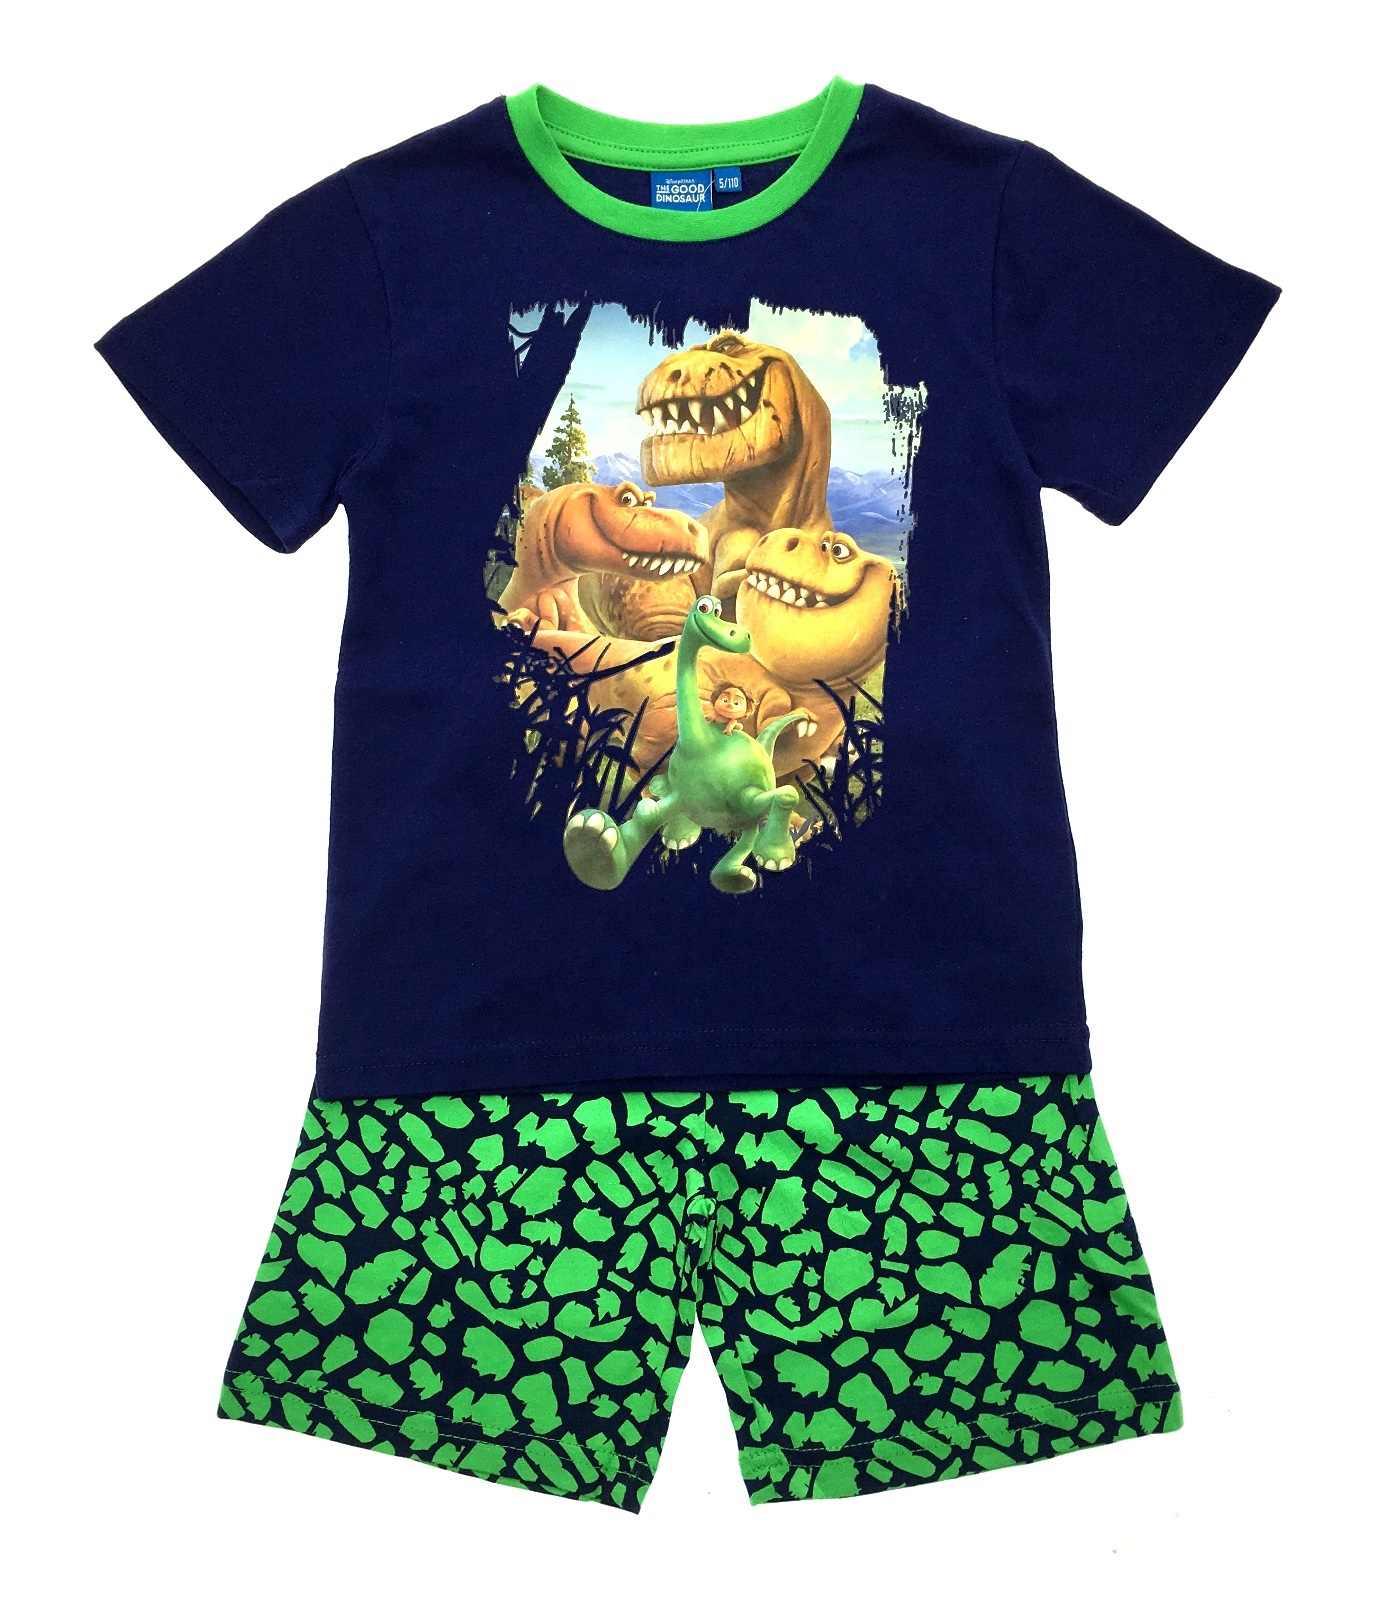 dinosaur pyjamas - 2 pack is rated out of 5 by 1. Rated 5 out of 5 by Anna from Great 1st fast shipping and service. Ordered a thursday and received the coming monday super fast and needed it for an emergency trip.